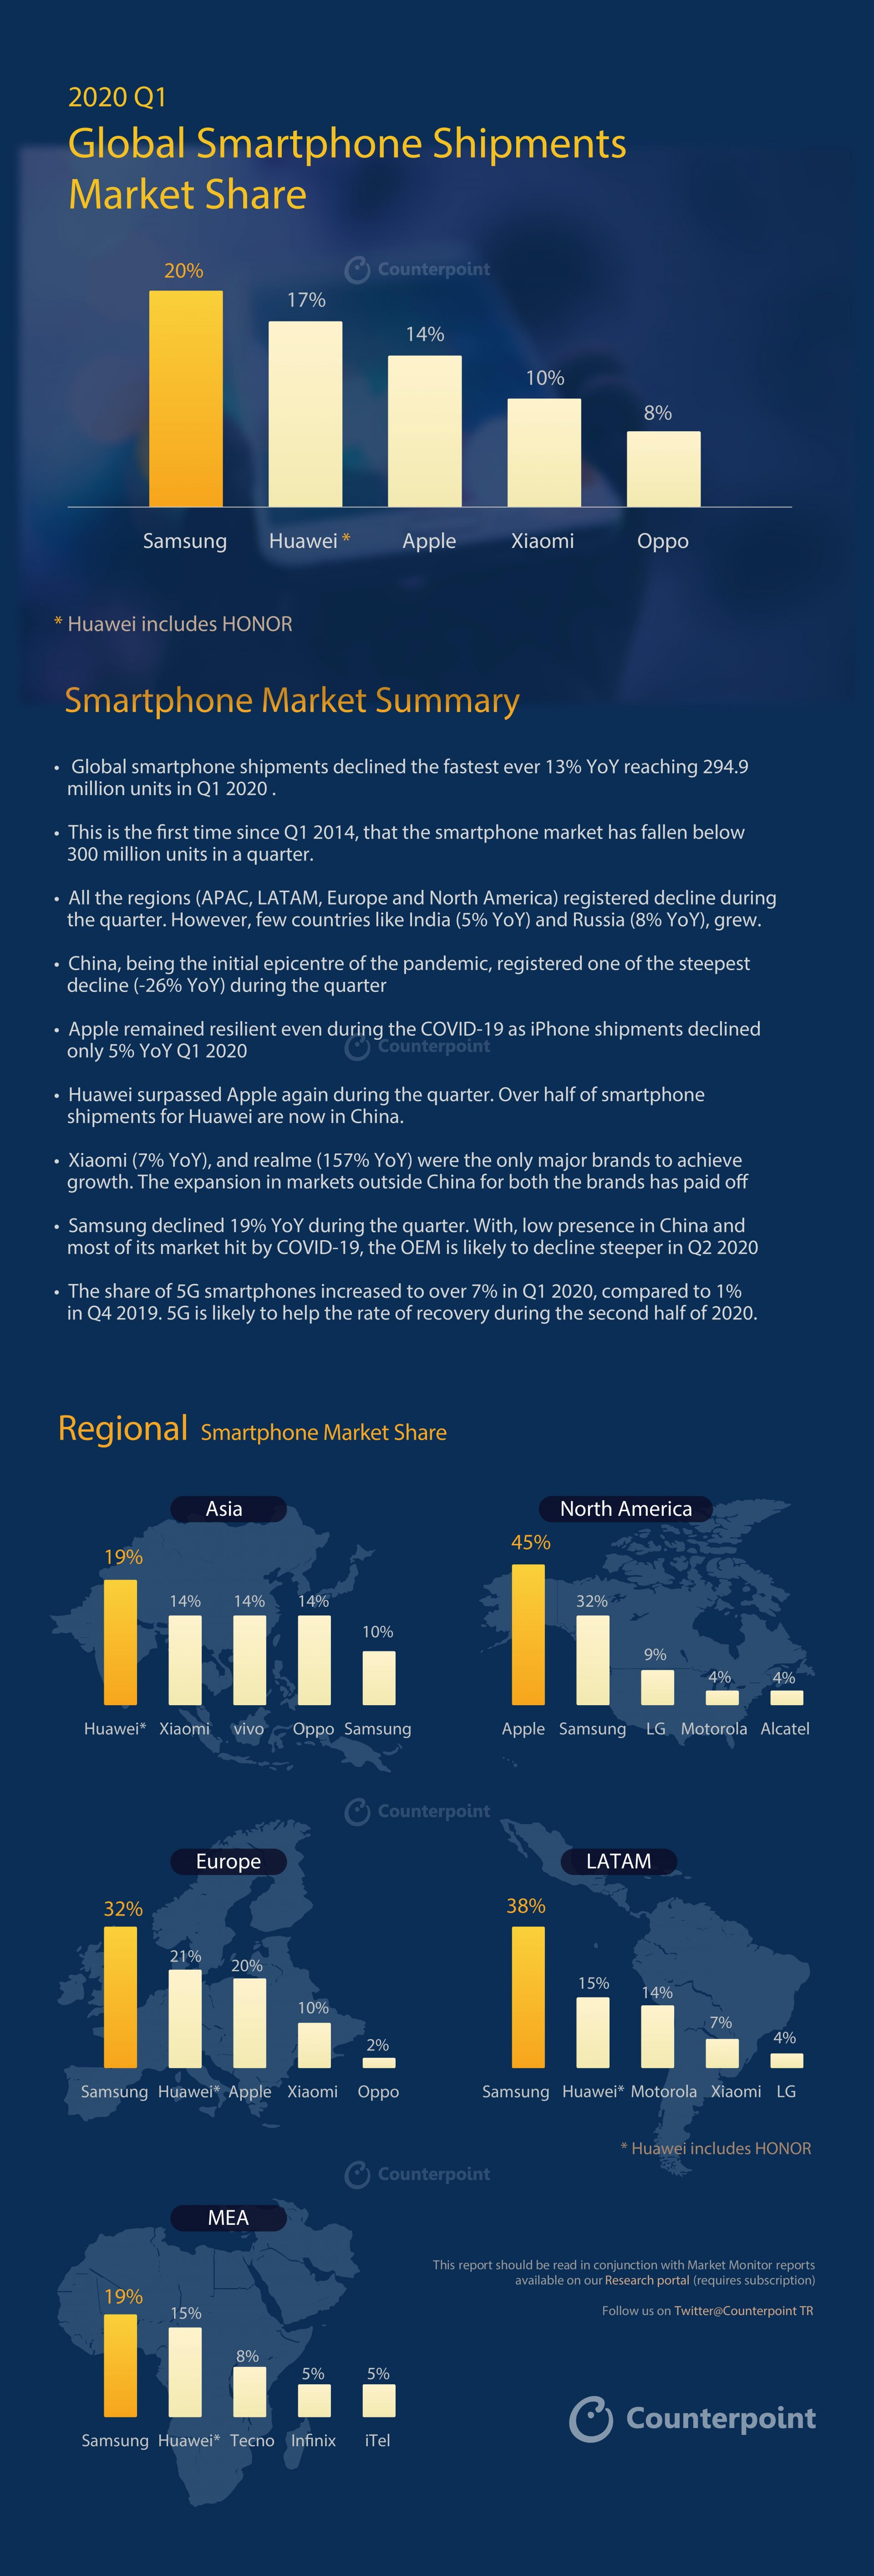 Counterpoint 2020 Q1 Smartphone Infographic